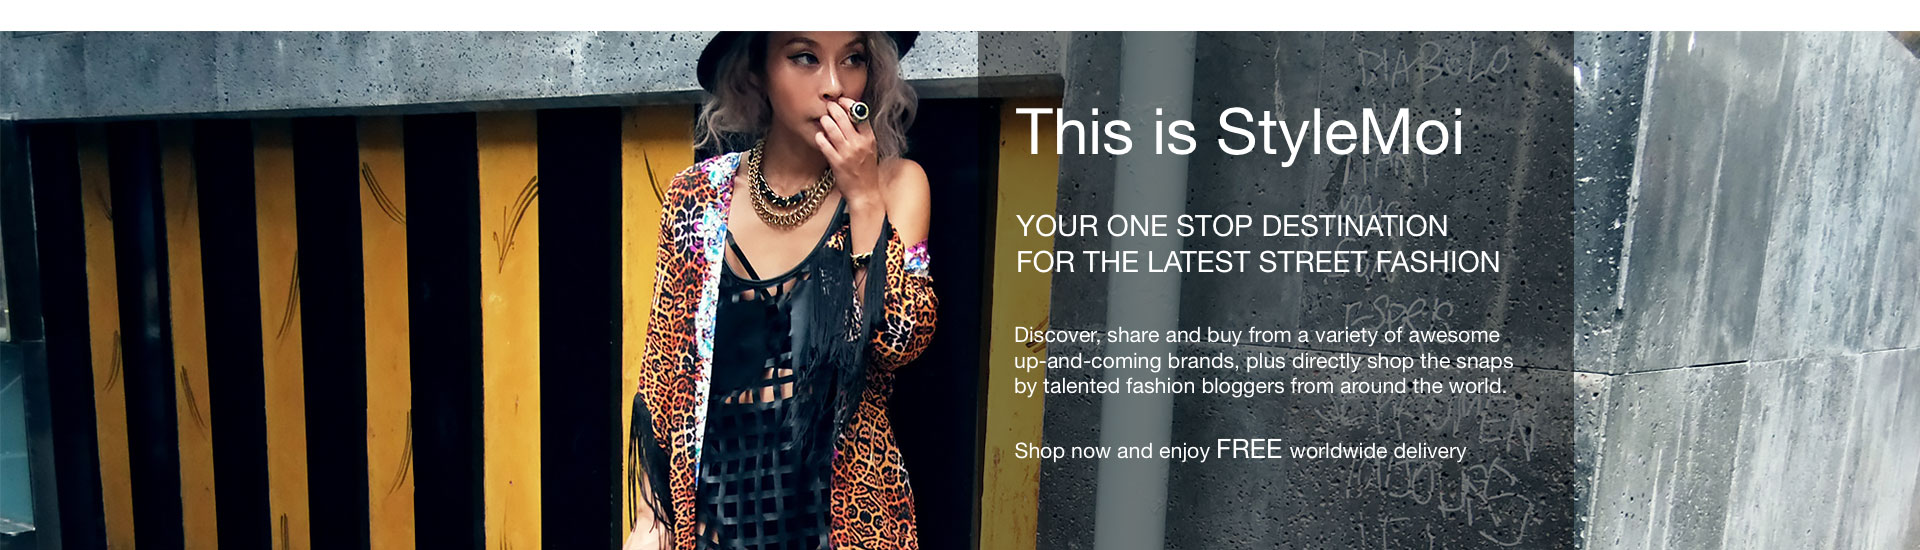 Style Moi | Shop the Latest Street Fashion Online; Get Style Inspirations From Fashion Bloggers Around The World at Style Moi